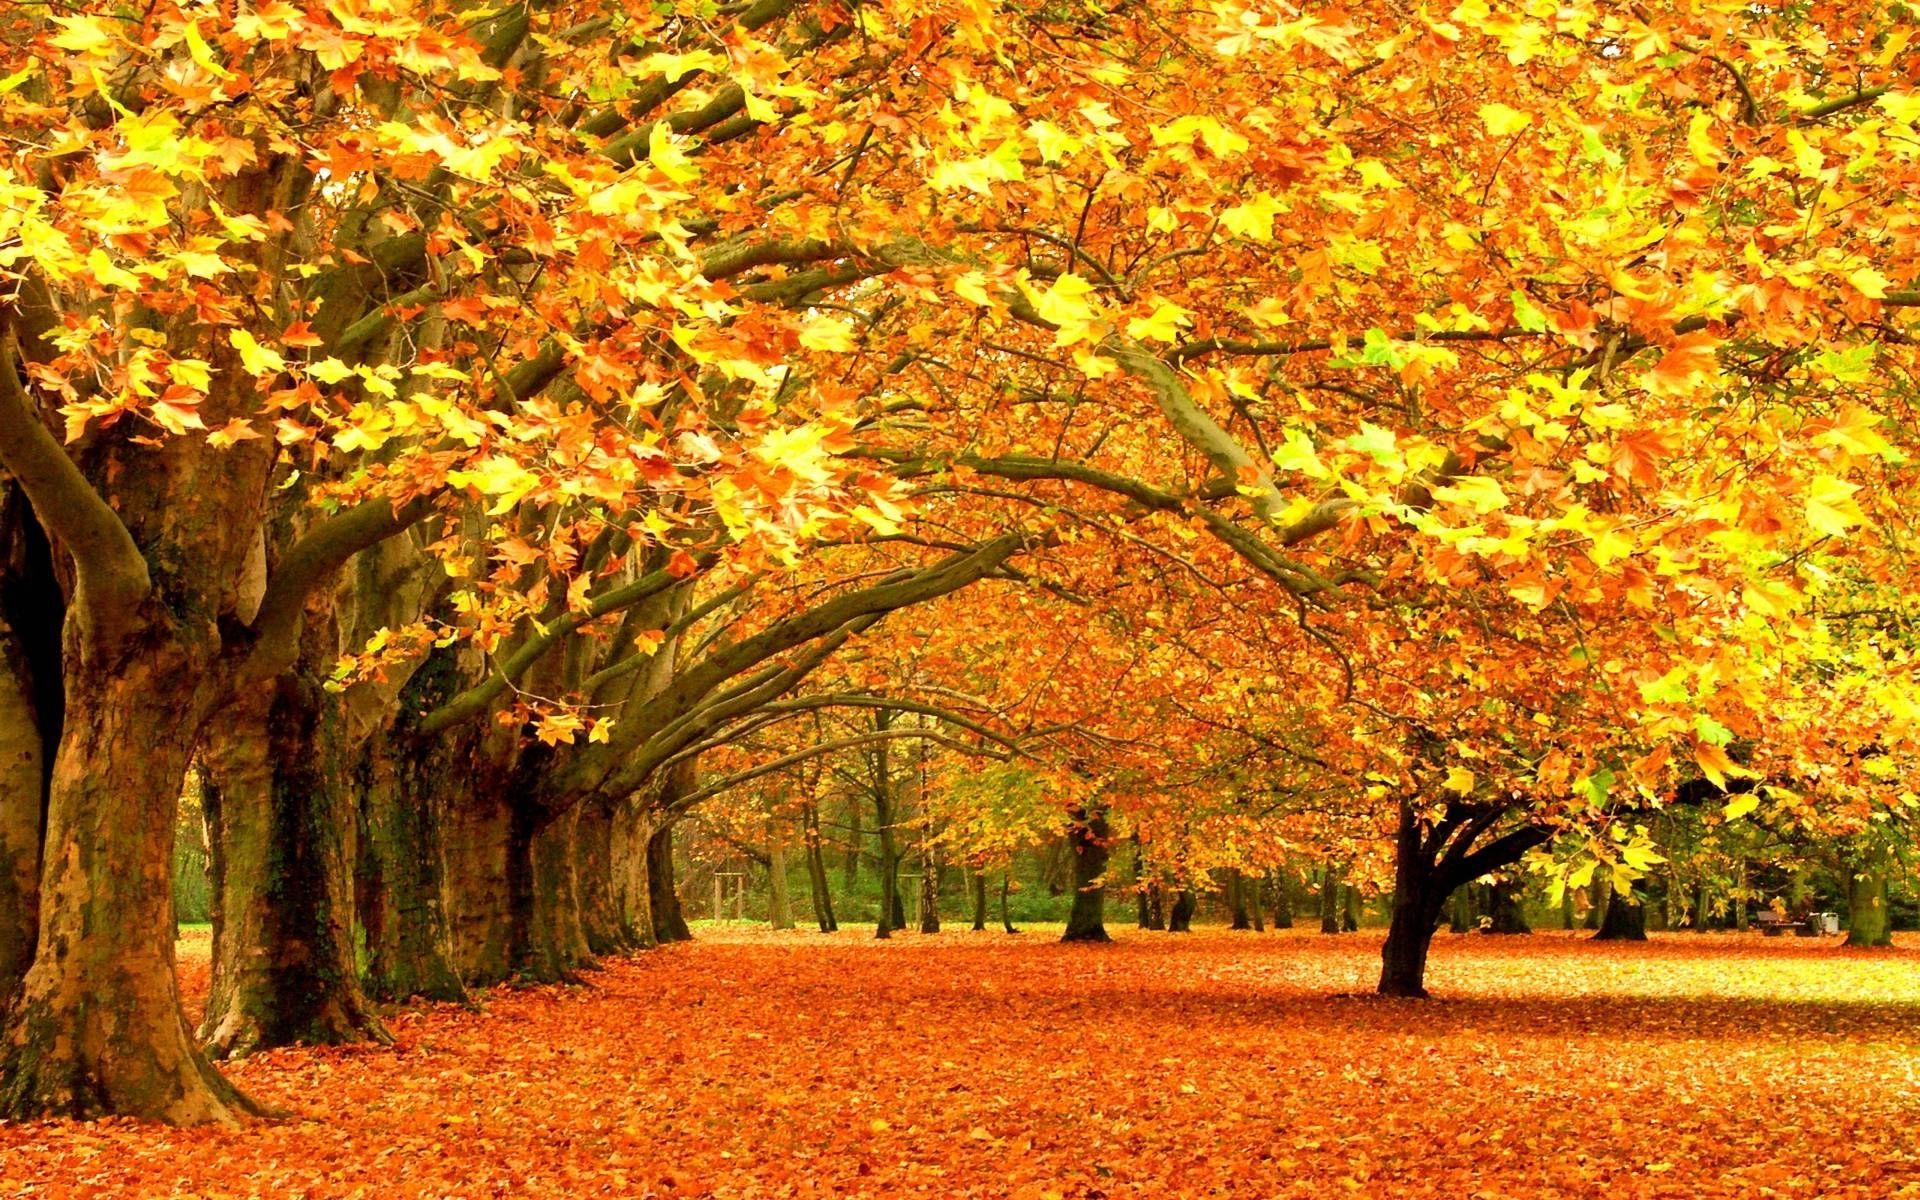 10 Top Fall Leaves Wallpaper For Desktop Full Hd 1080p For Pc Background Autumn Scenery Autumn Scenes Autumn Nature